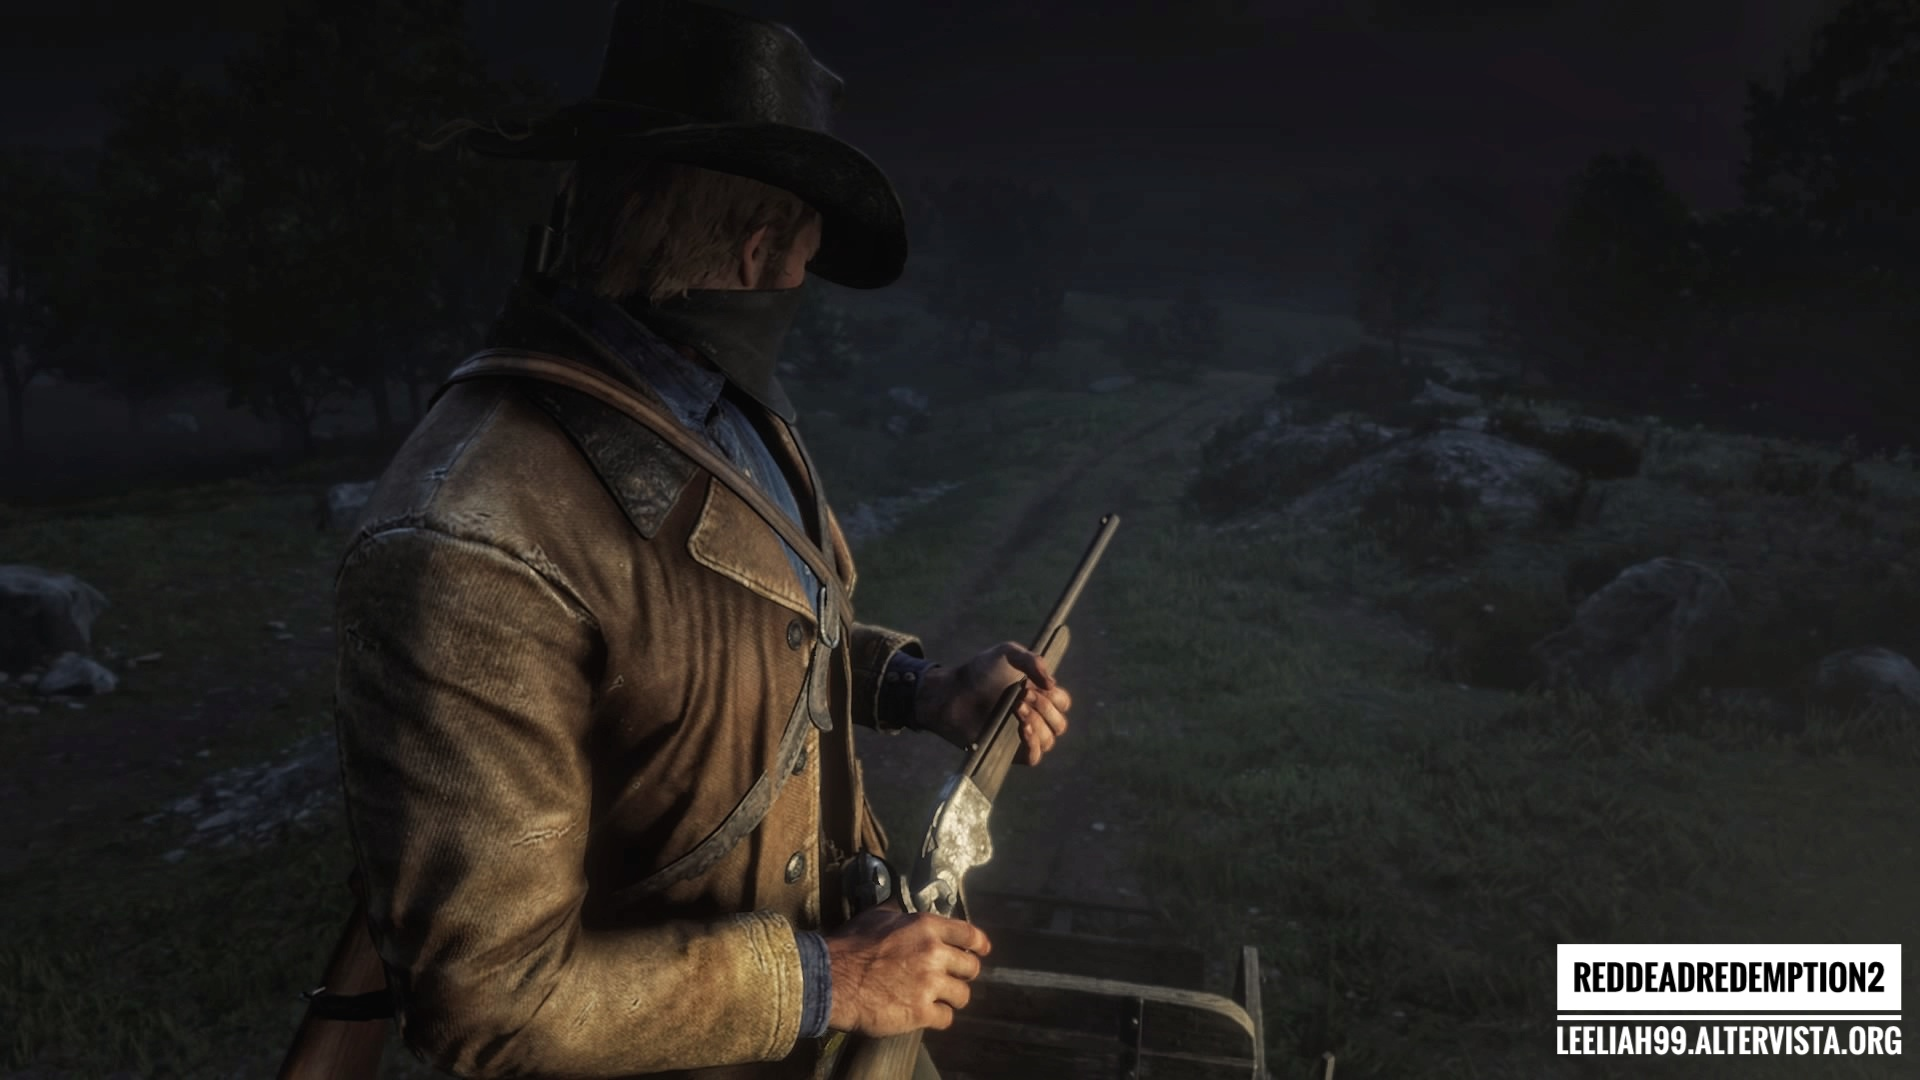 Red Dead Redemption 2 © leeliah99.altervista.org